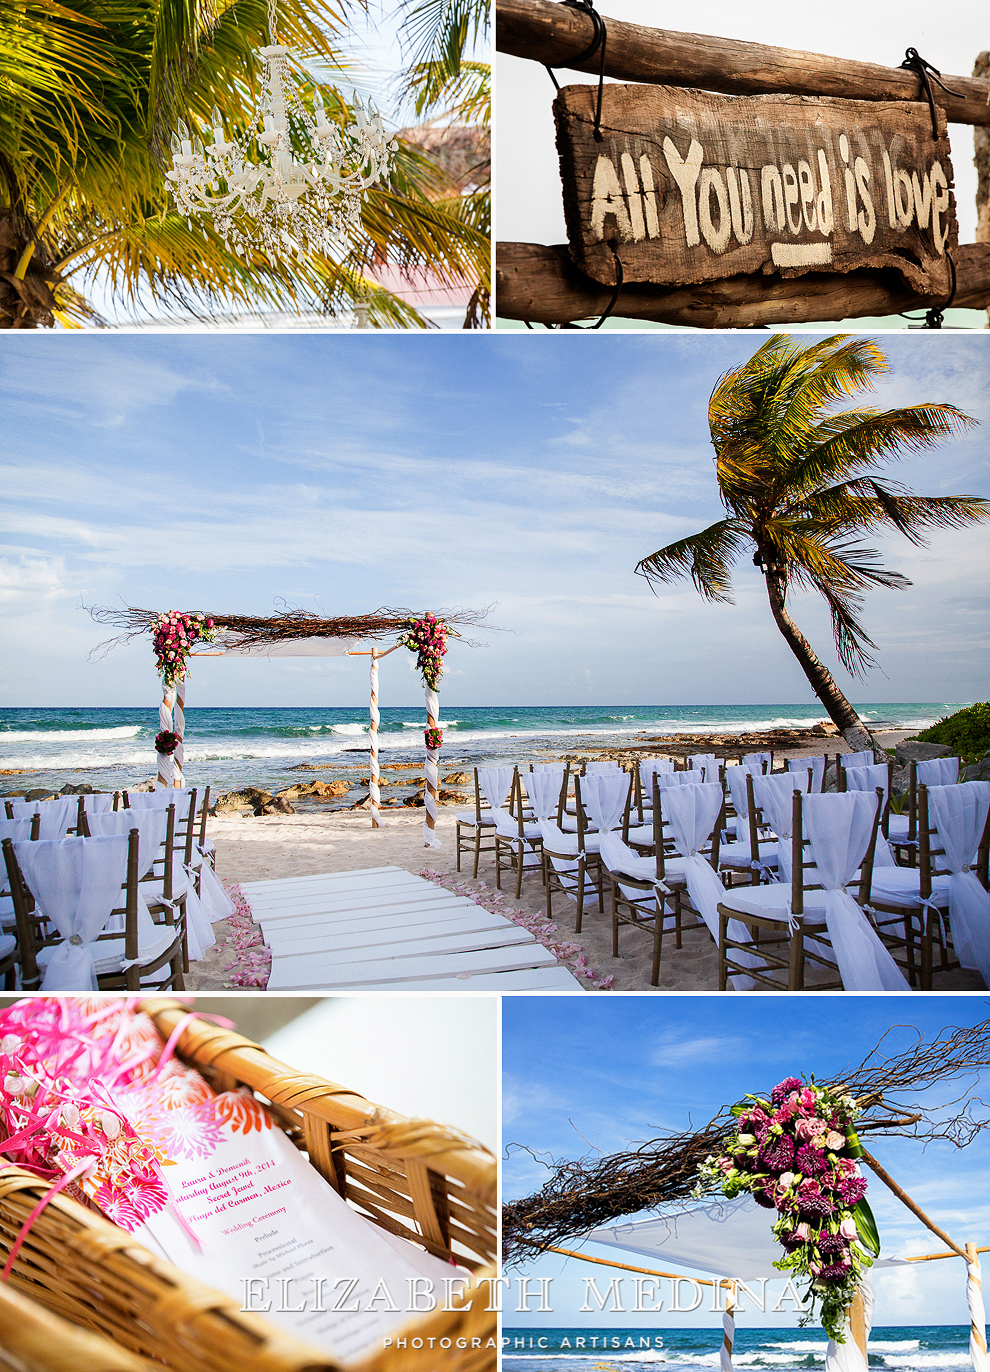 emedina_secret jewel wedding_005 Mayan Riviera Beach Wedding, Laura and Domenik at the Secret Jewel